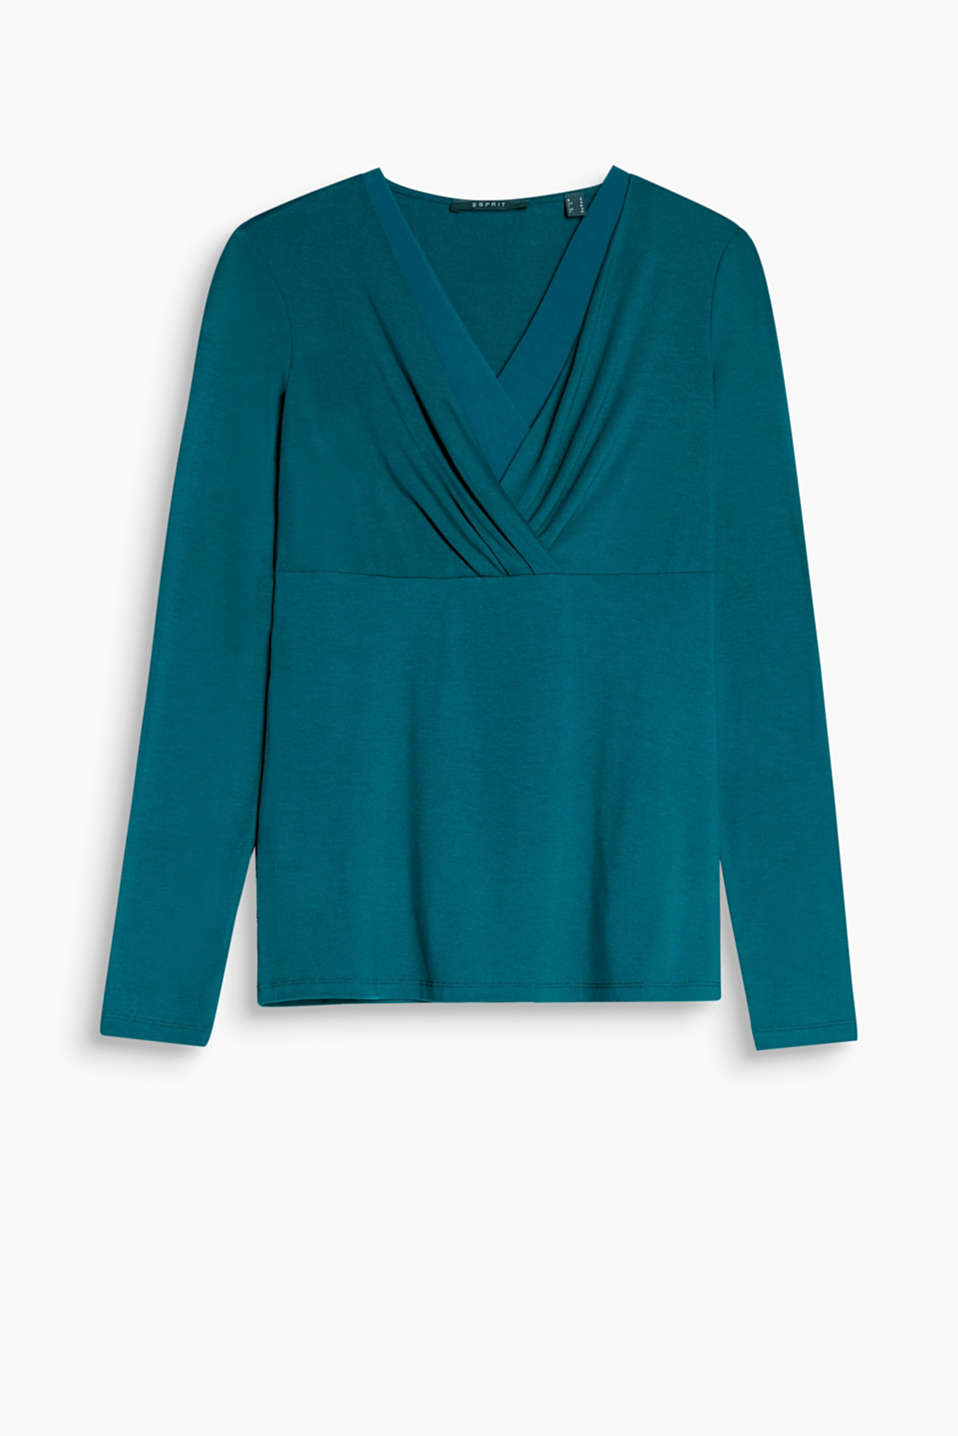 Feminine stretch long sleeve top with a draped effect and chiffon details